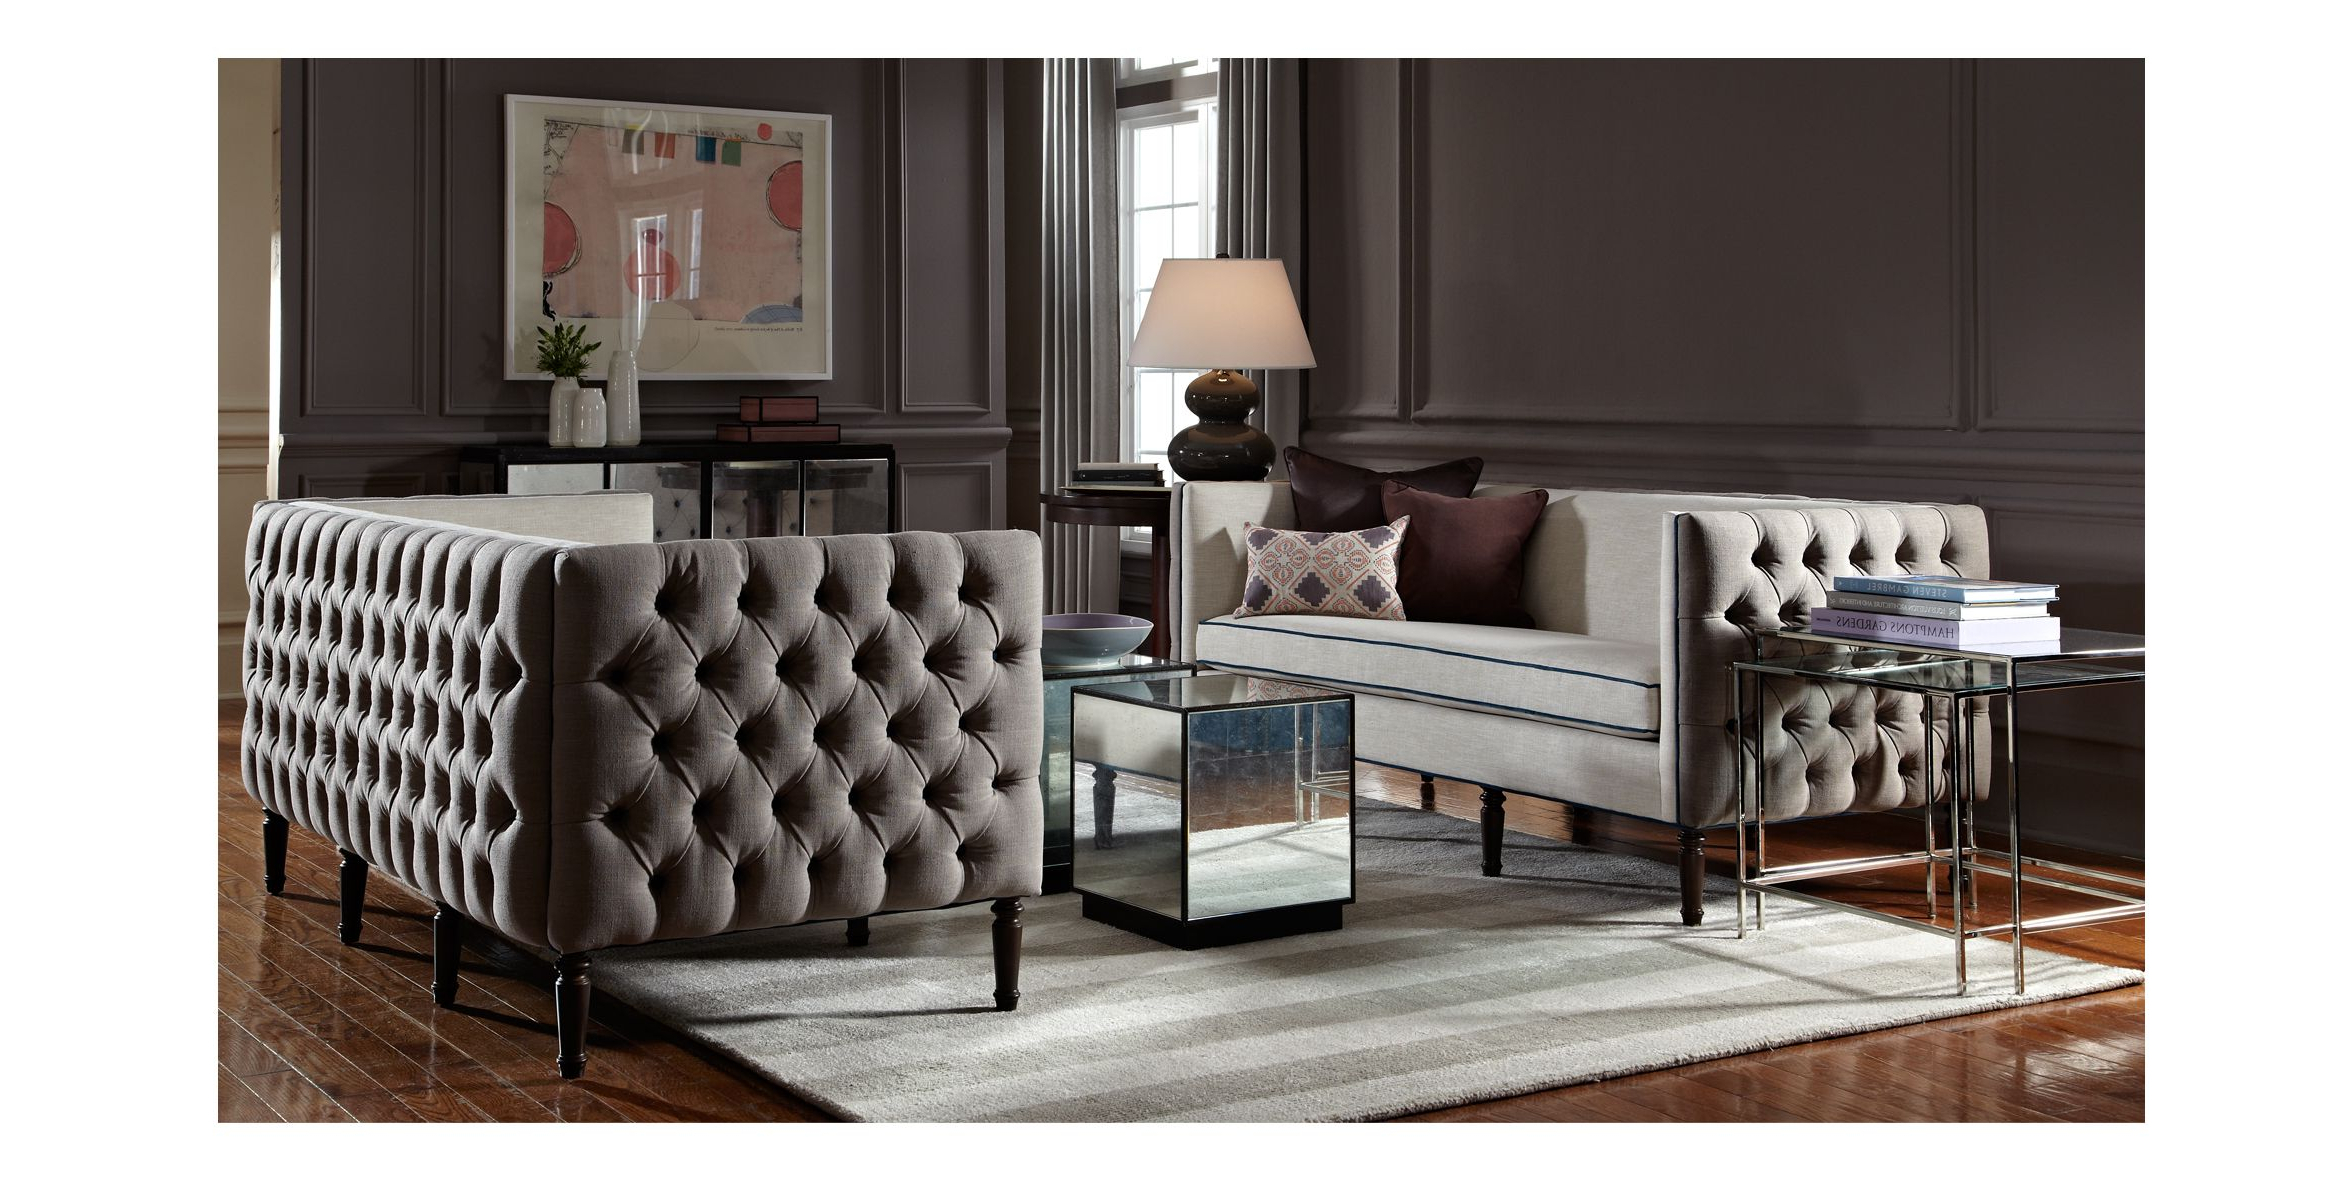 Modern Tufted Sofa – Google Search | Turn Of The Century Moderne Regarding Parsons Grey Solid Surface Top & Stainless Steel Base 48X16 Console Tables (View 12 of 20)